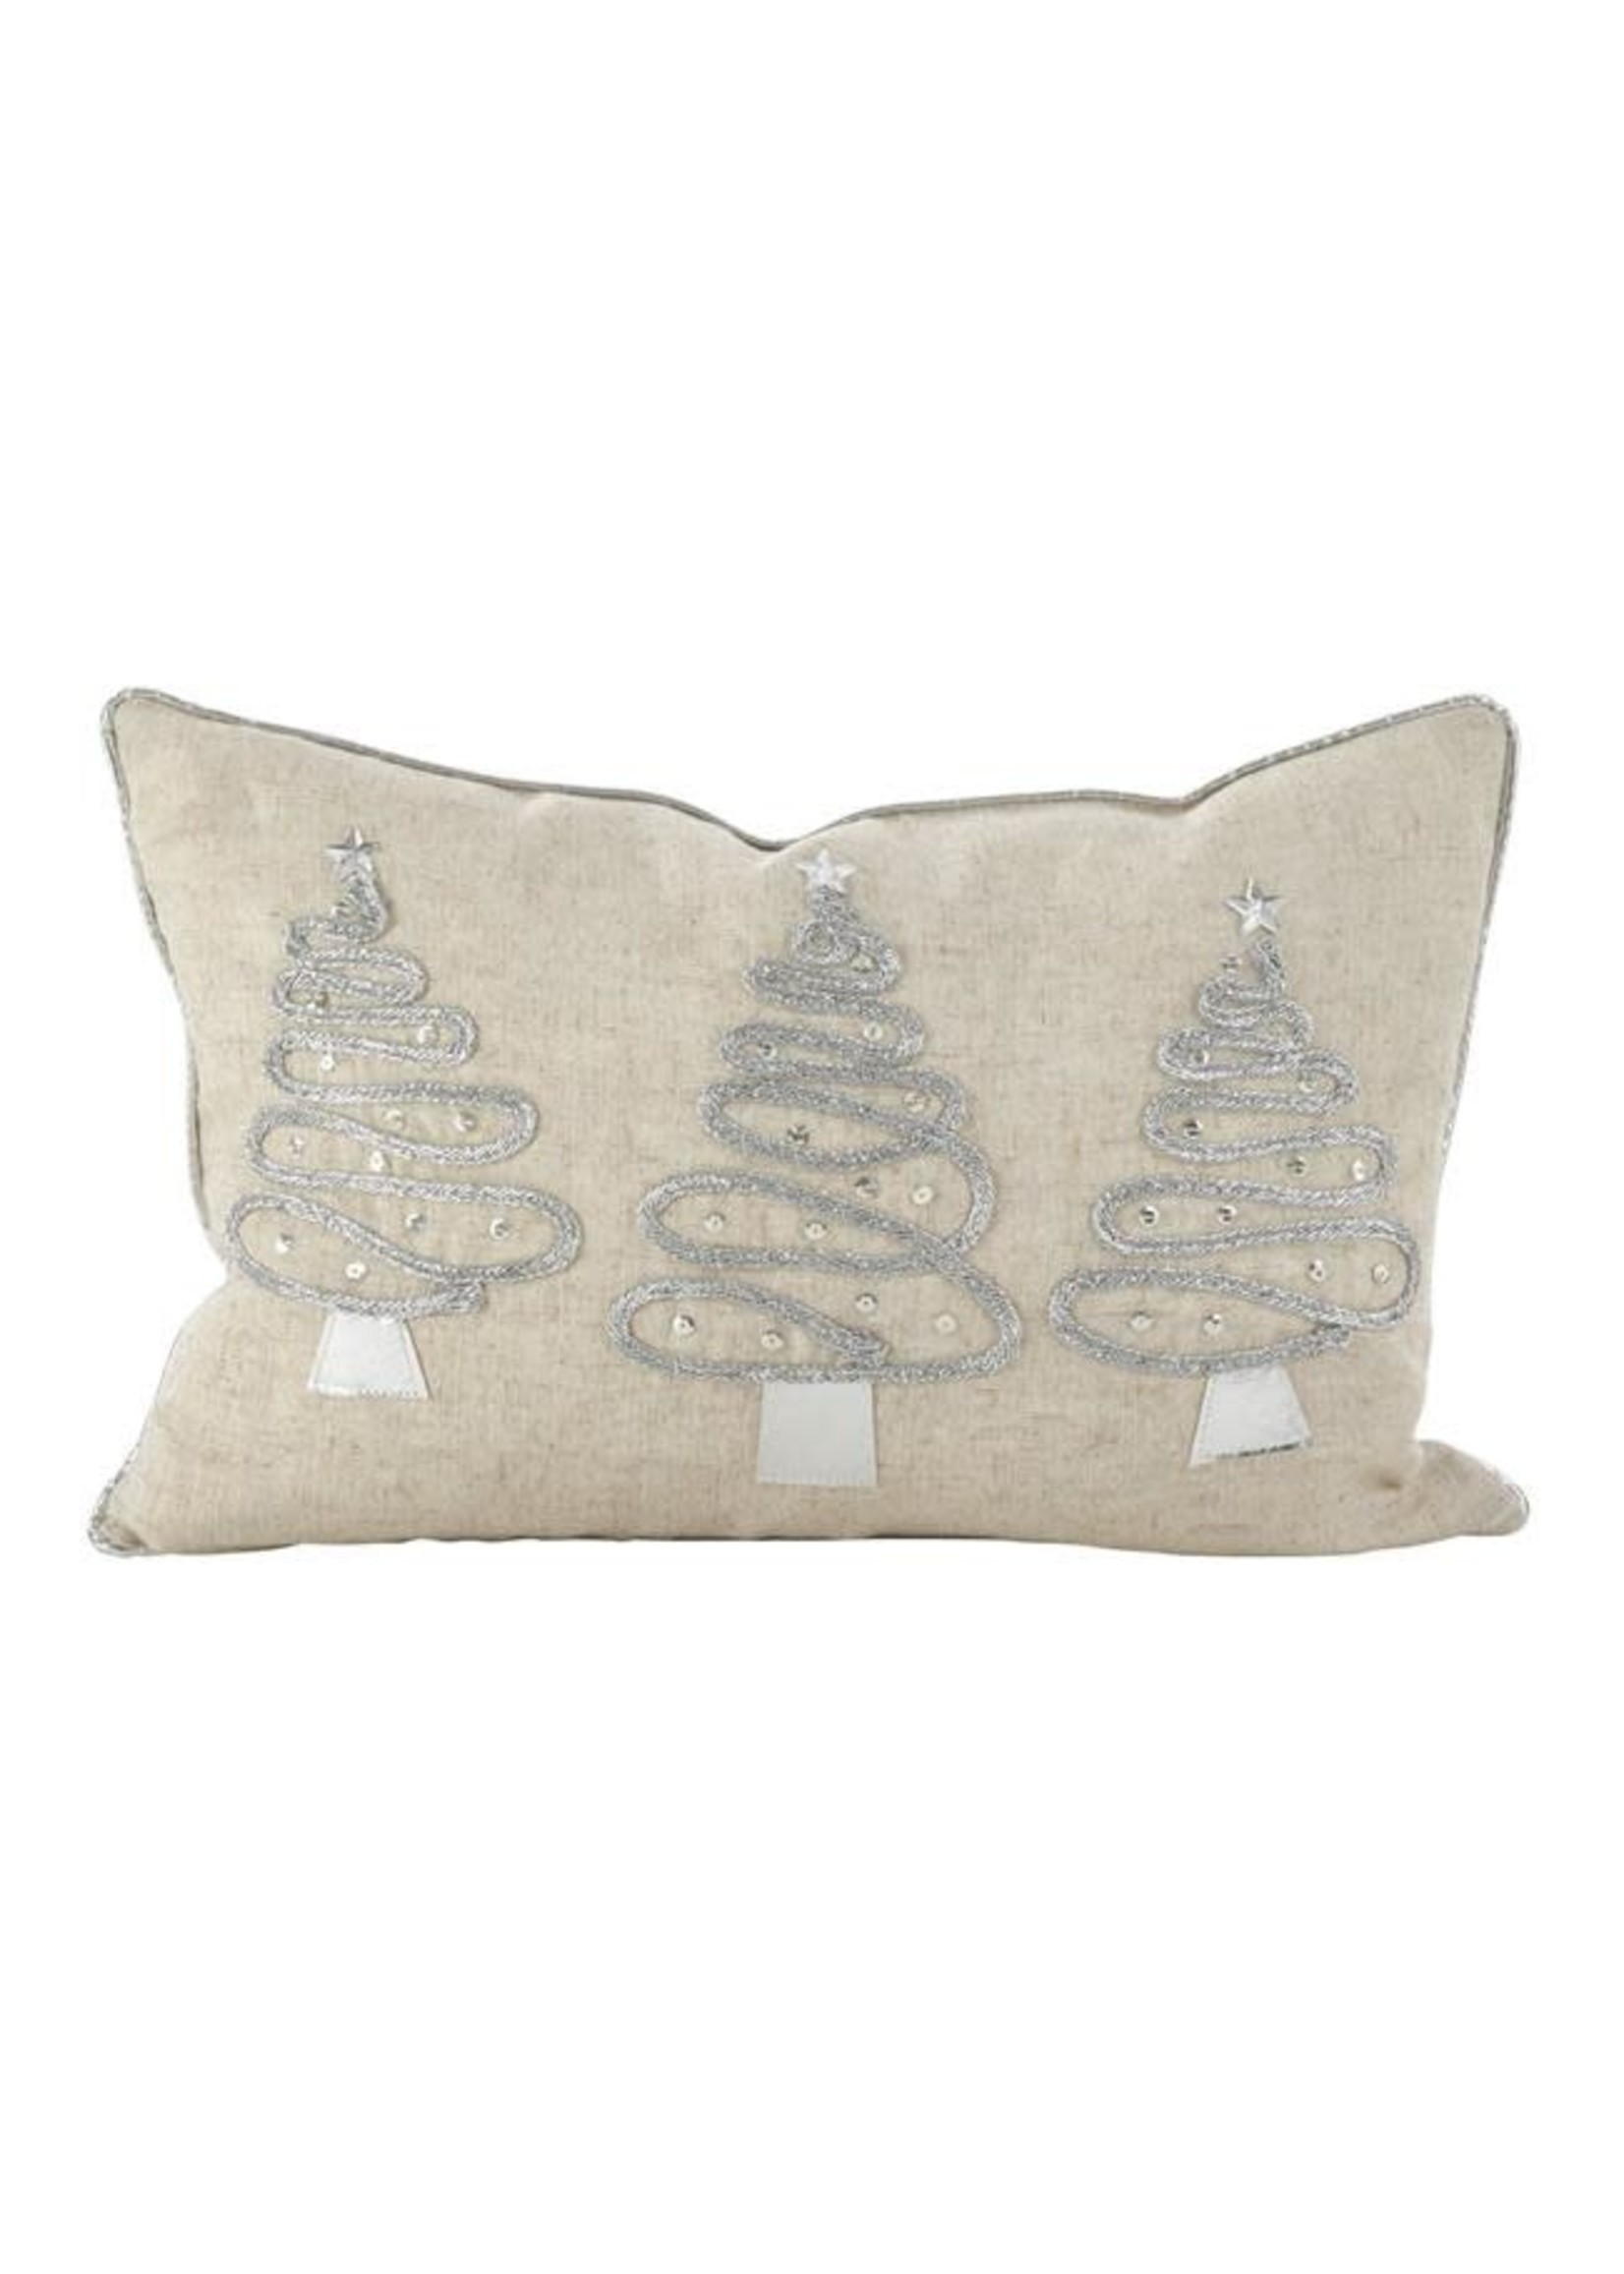 HOLIDAY TREES PILLOW-POLY FILLED